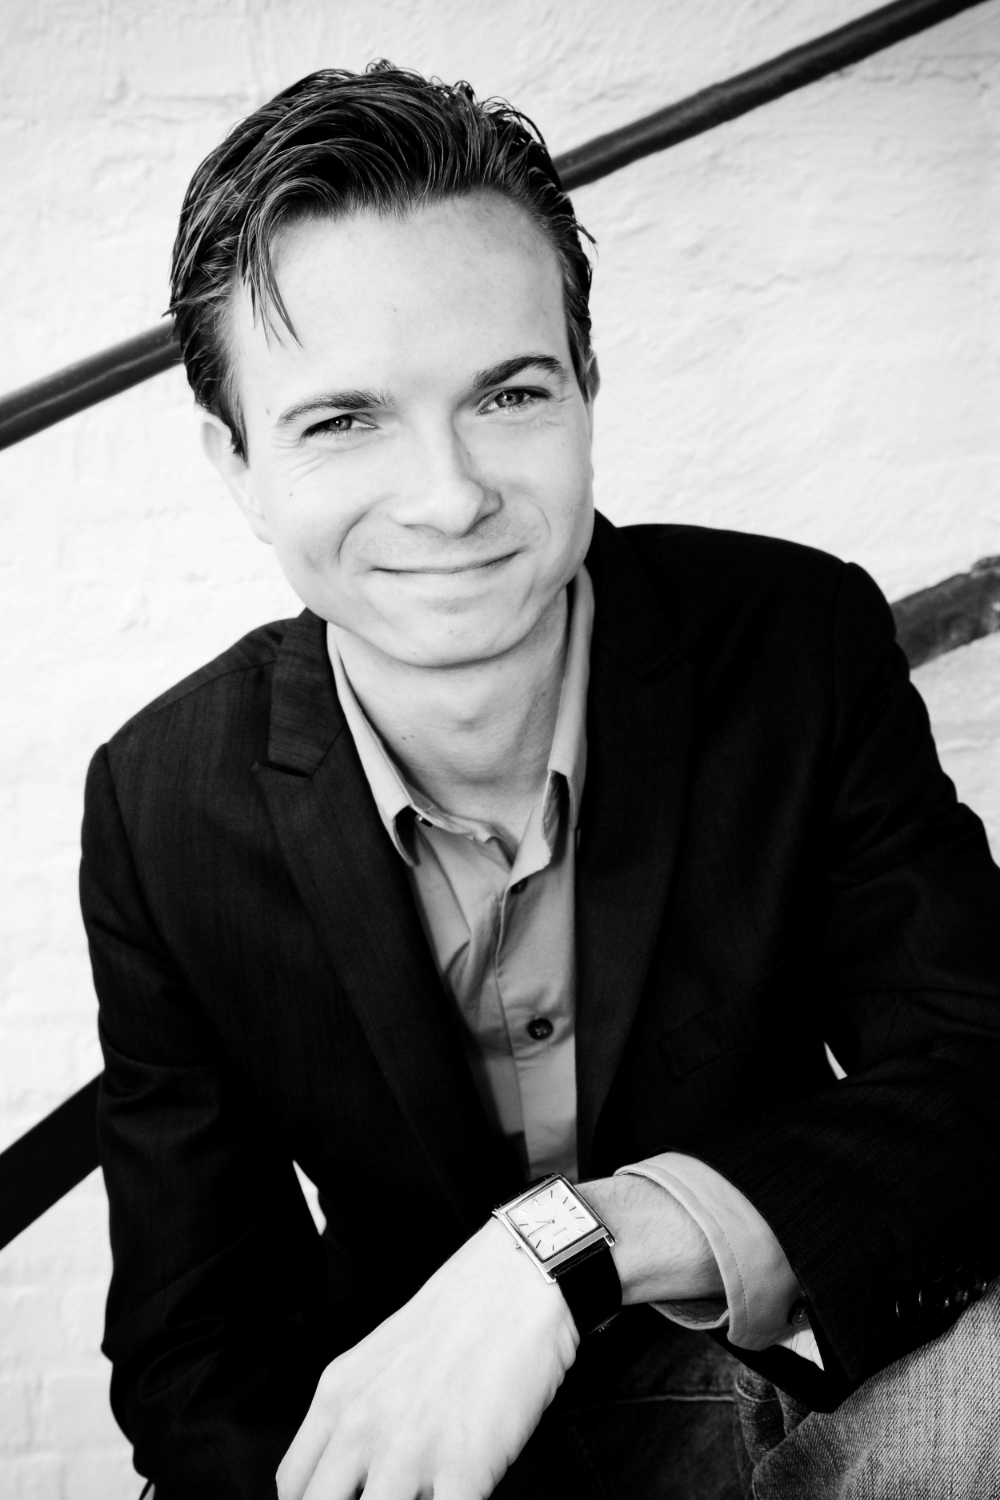 A black and white photo of Wink, a white man, clean shaven with hair parted to one side, not wearing glasses smiling at the camera while sitting in a stairwell and waring a suit, button up shirt, with no tie